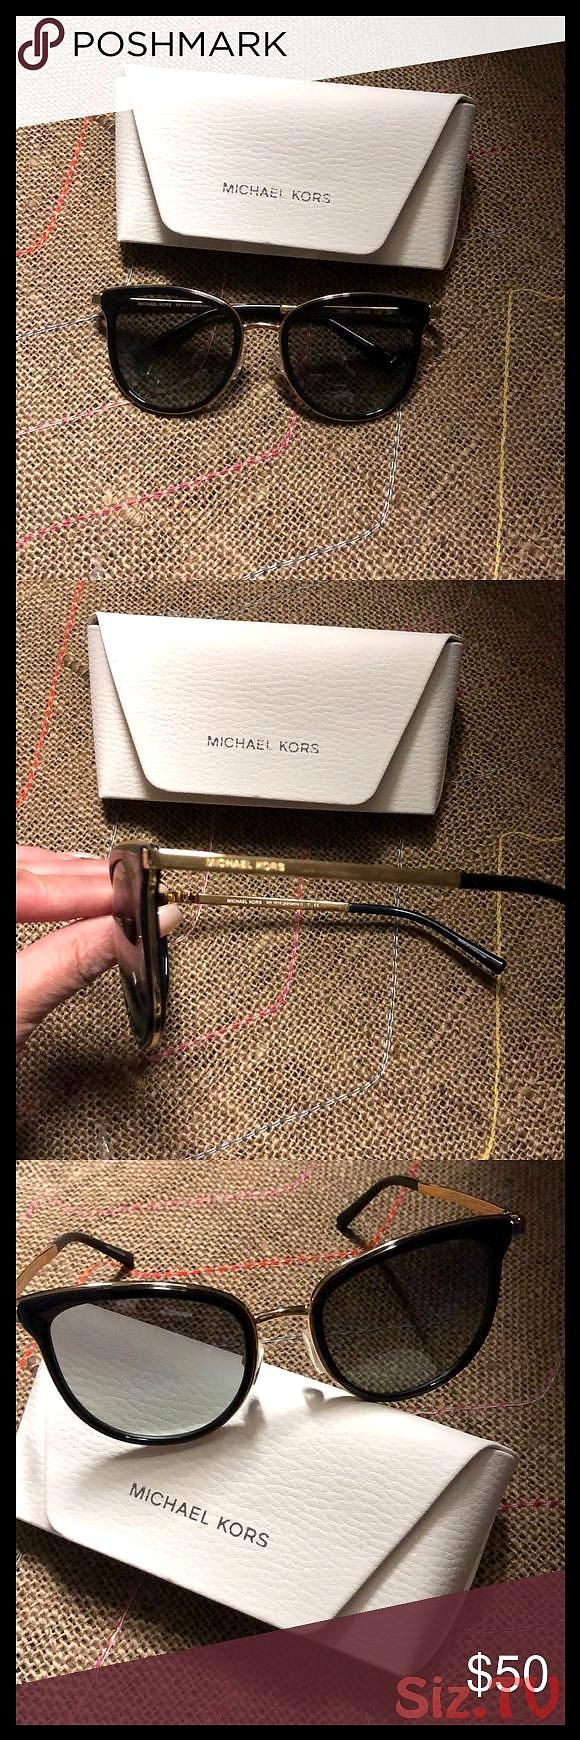 Michael kors sunglass Michael kors sunglass like newonly wore them twice Fabulous flash lenses add a punch to these polished acetate sunglasses Michael kors sunglass Mich...